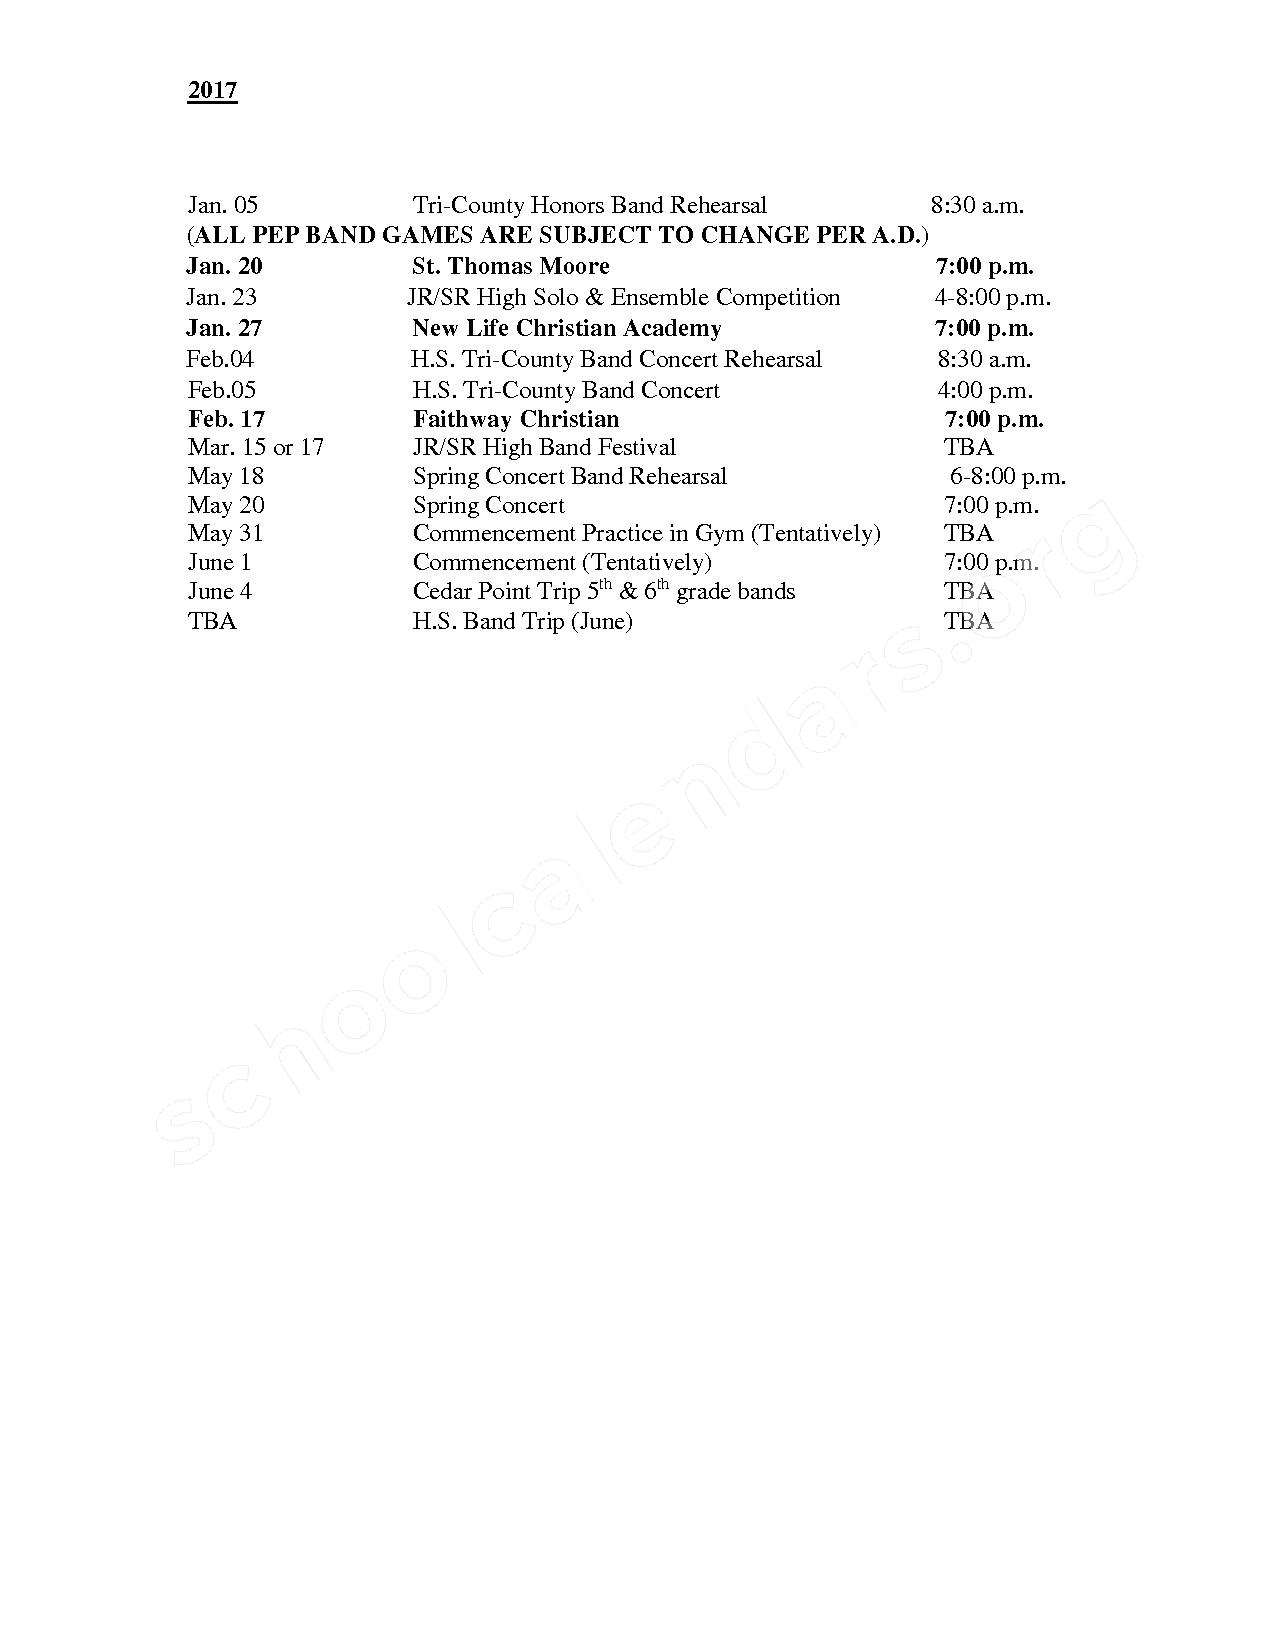 Band Calendar – Owendale-Gagetown Area Schools – page 2